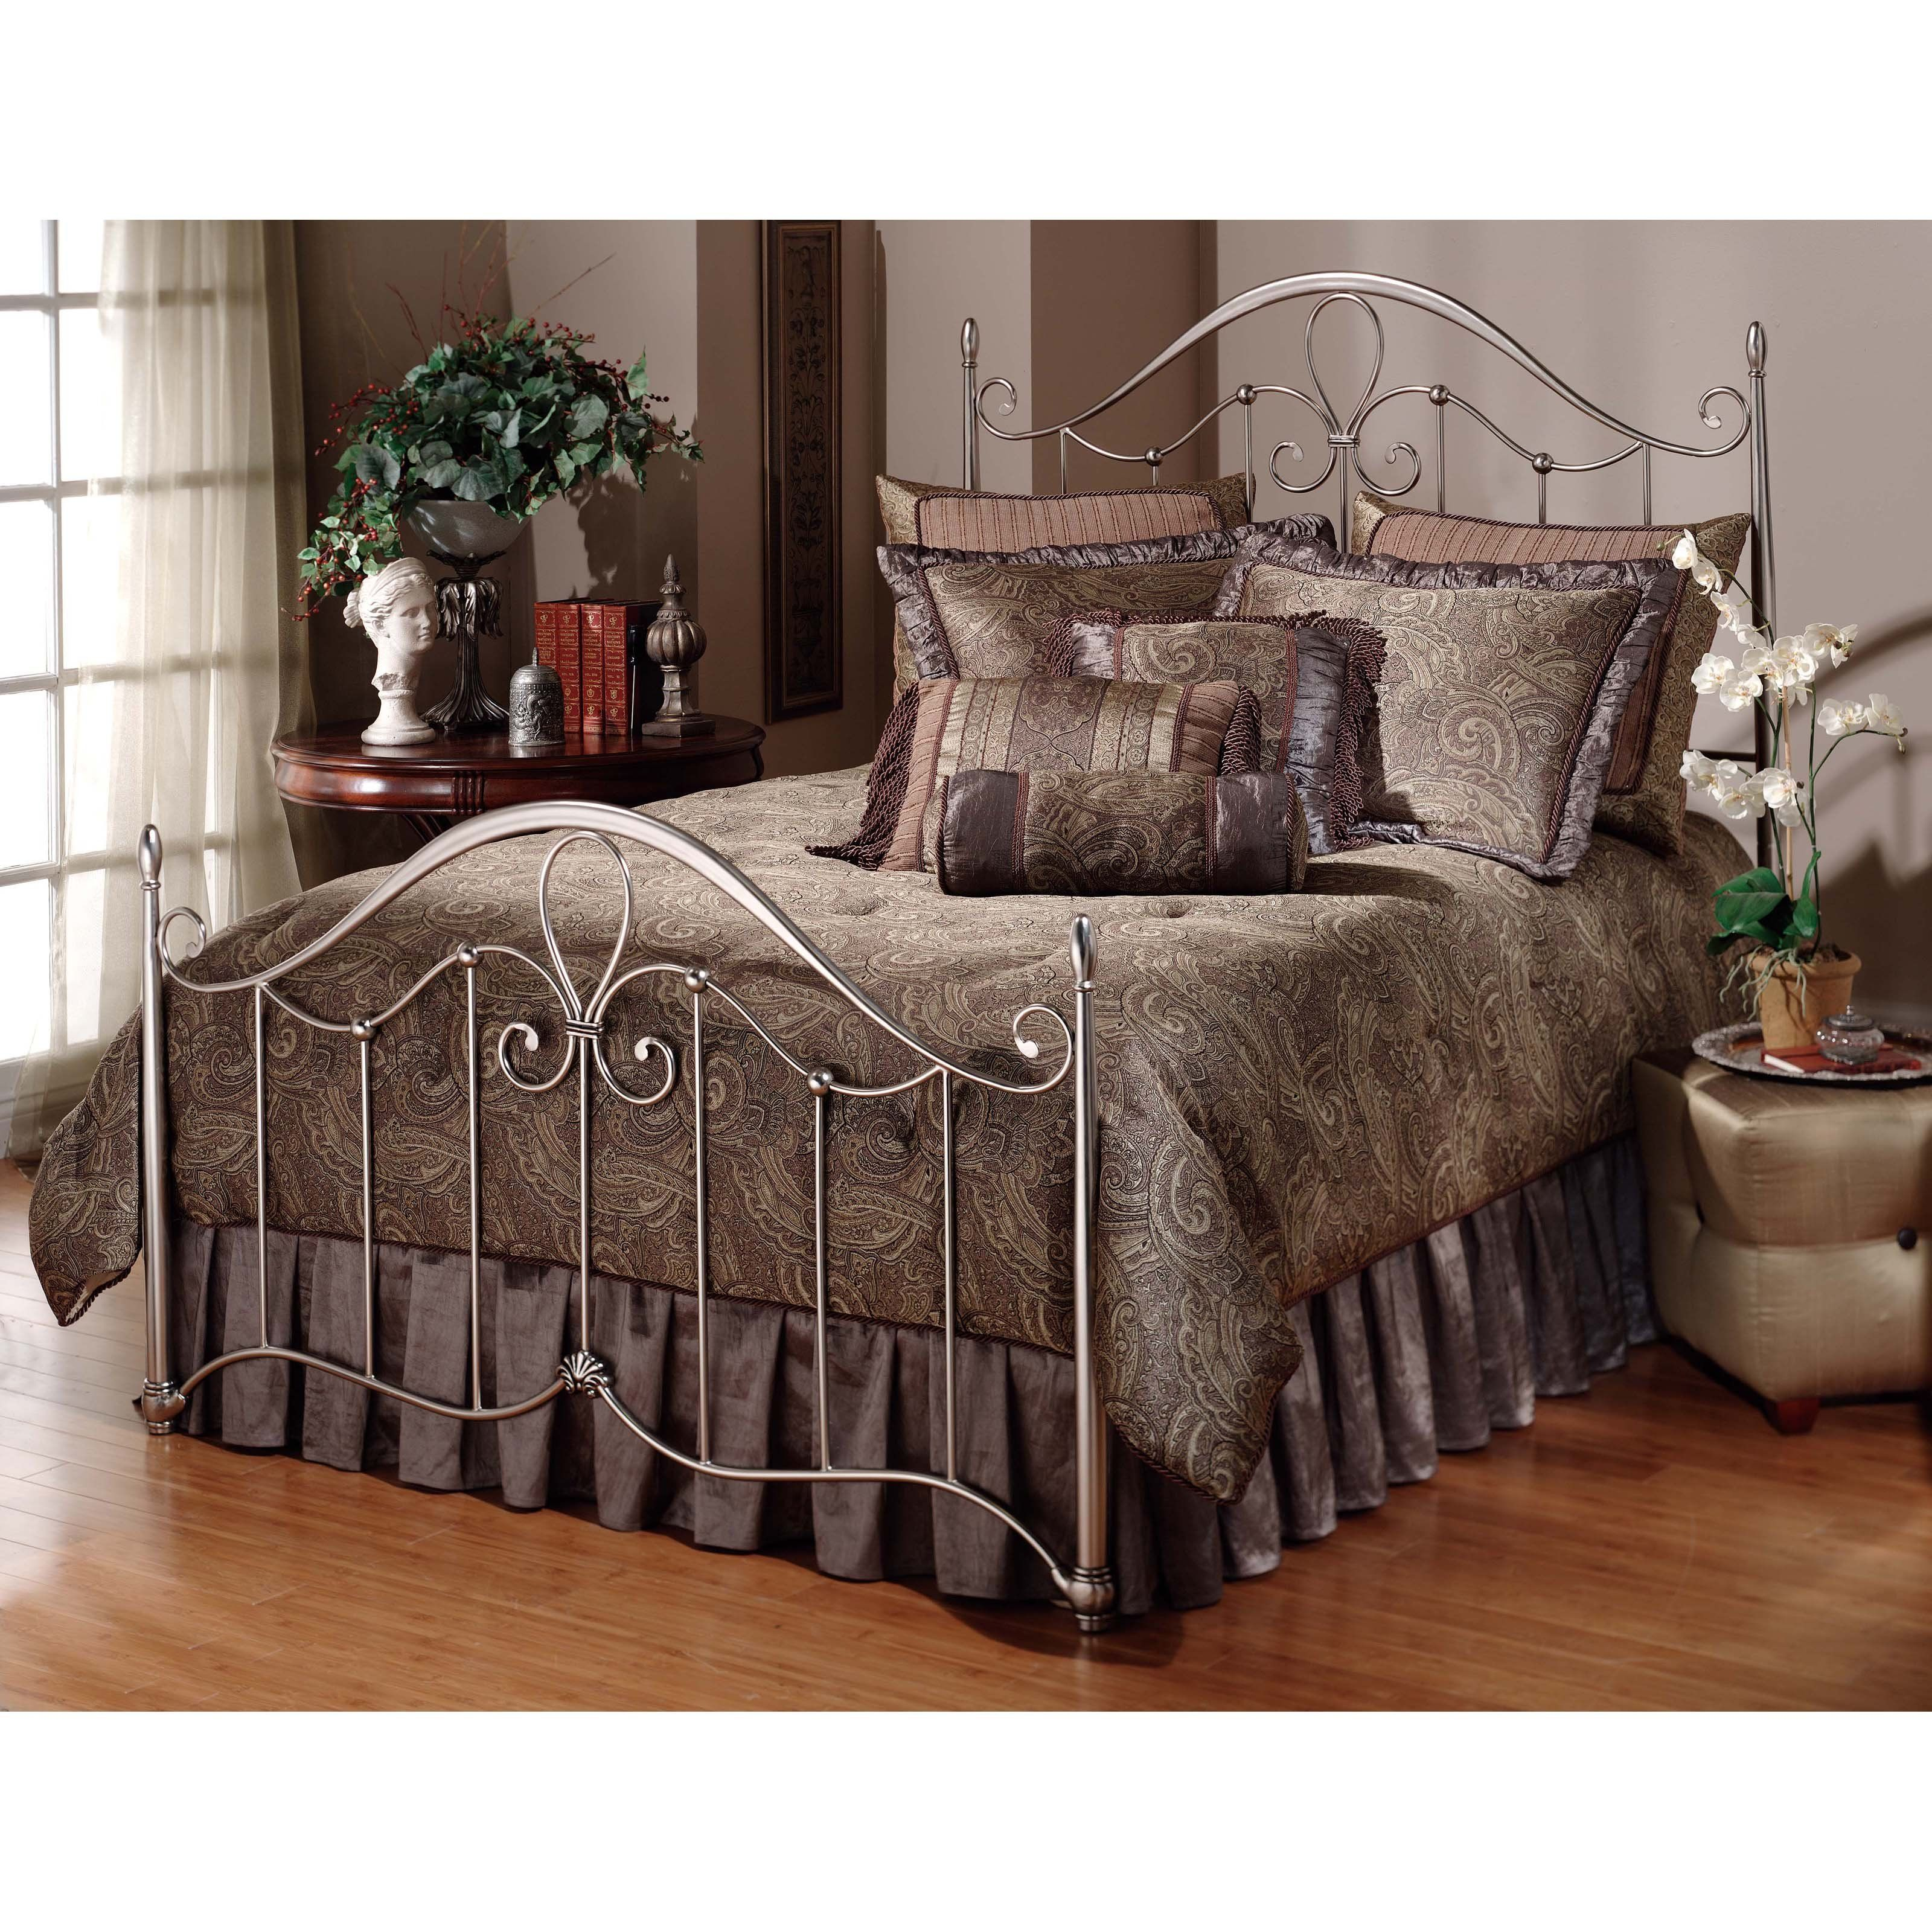 Have To Have It Doheny Bed 319 Headboards Pinterest Bed